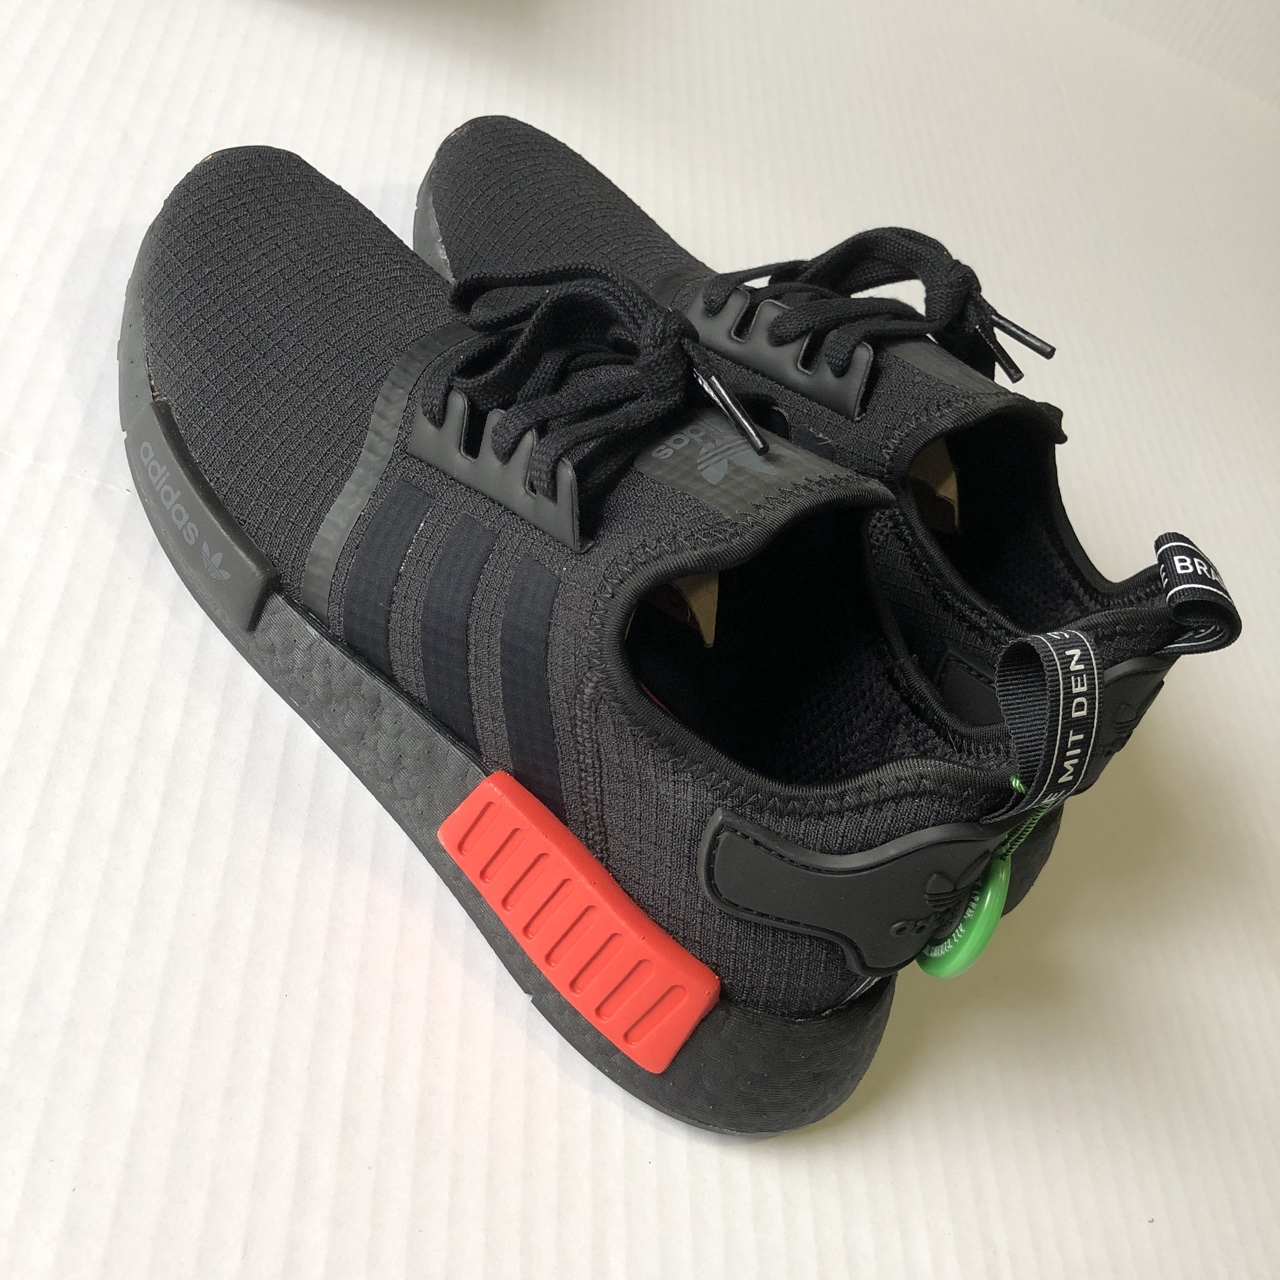 competitive price 75871 76a6a Adidas nmd r1 Core Black/black/lush red StockX... - Depop